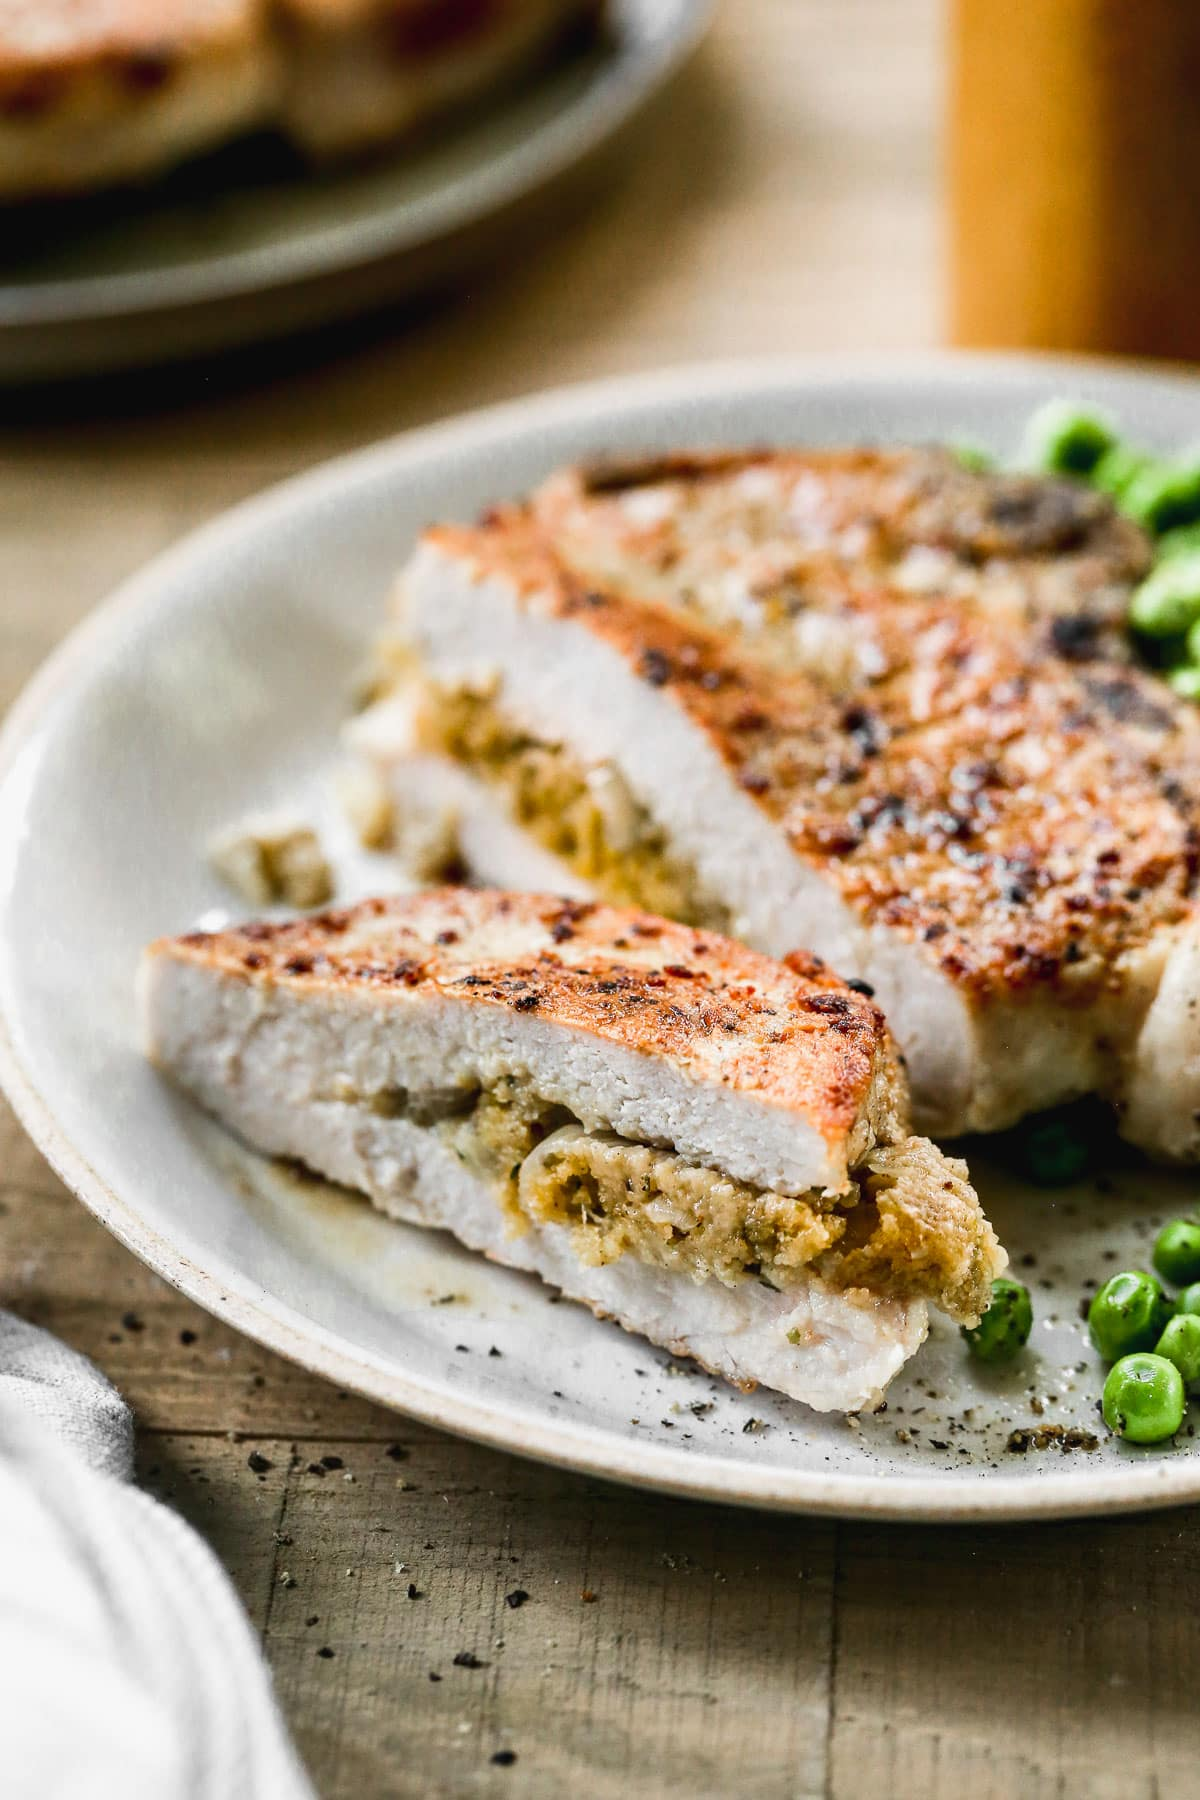 stuffed pork chops with cheese on a plate